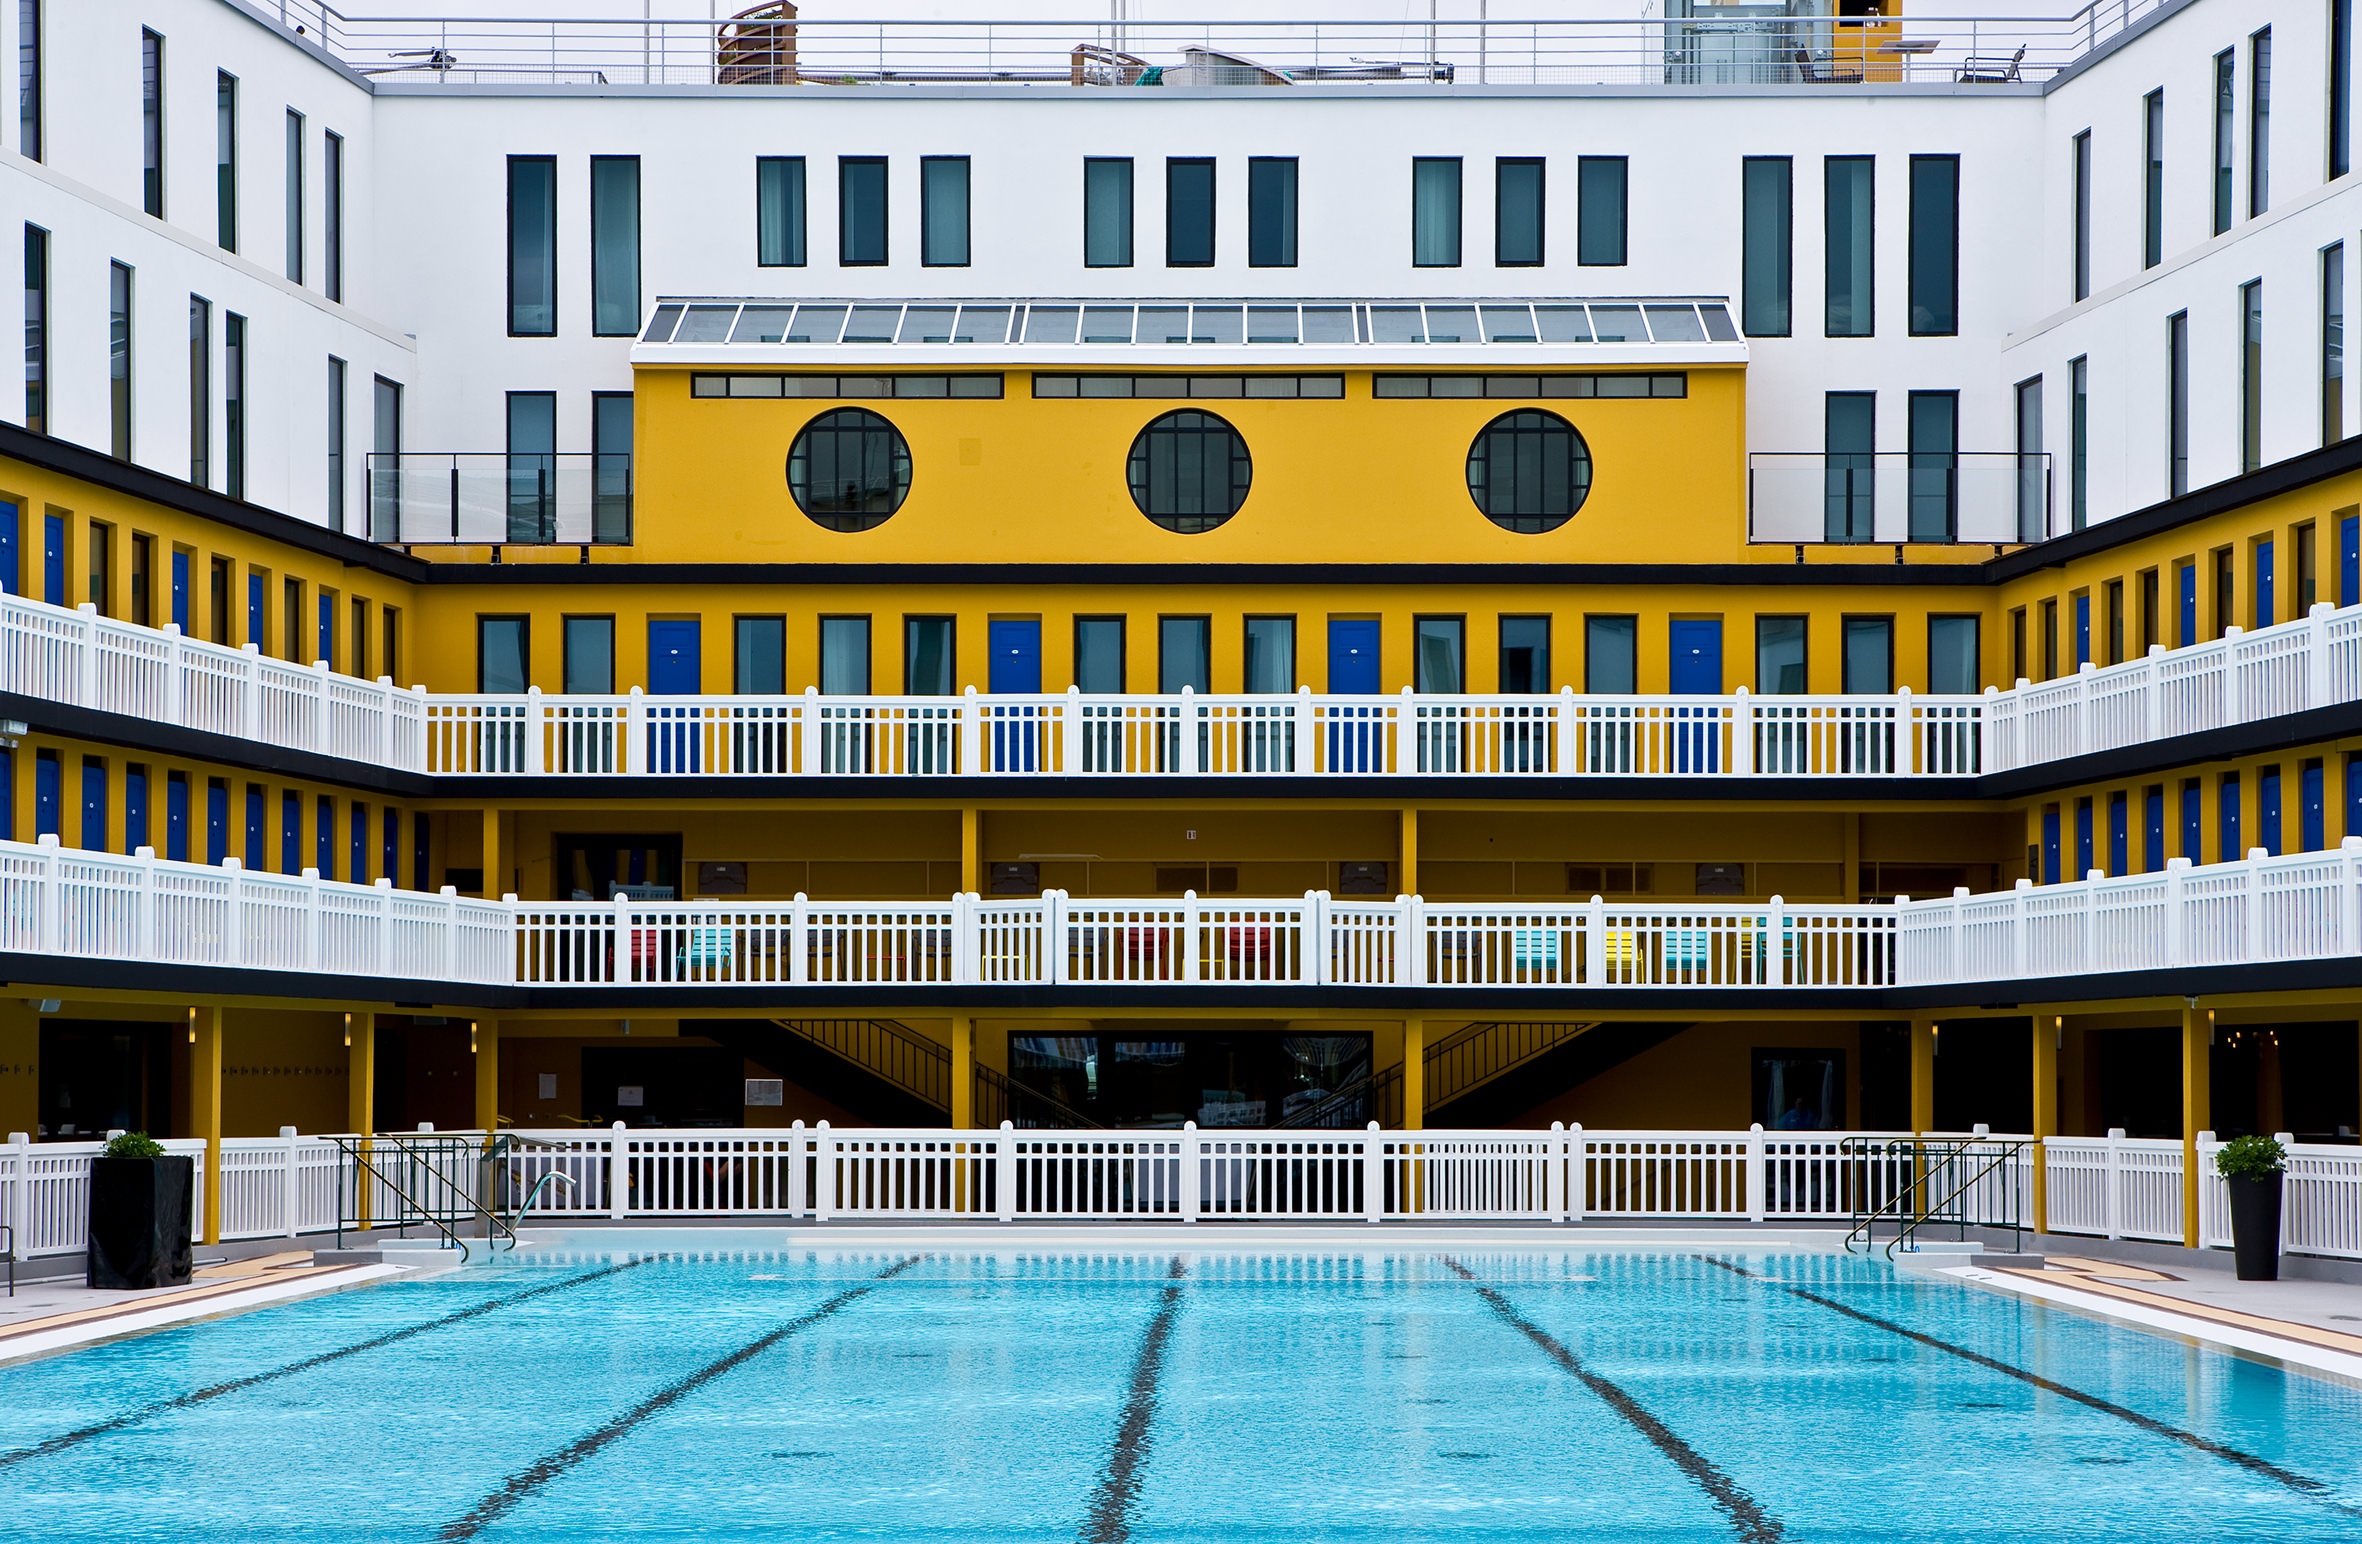 Piscine Molitor Paris: From Swimming Pool To Luxury Hotel ... pour Piscine Auteuil